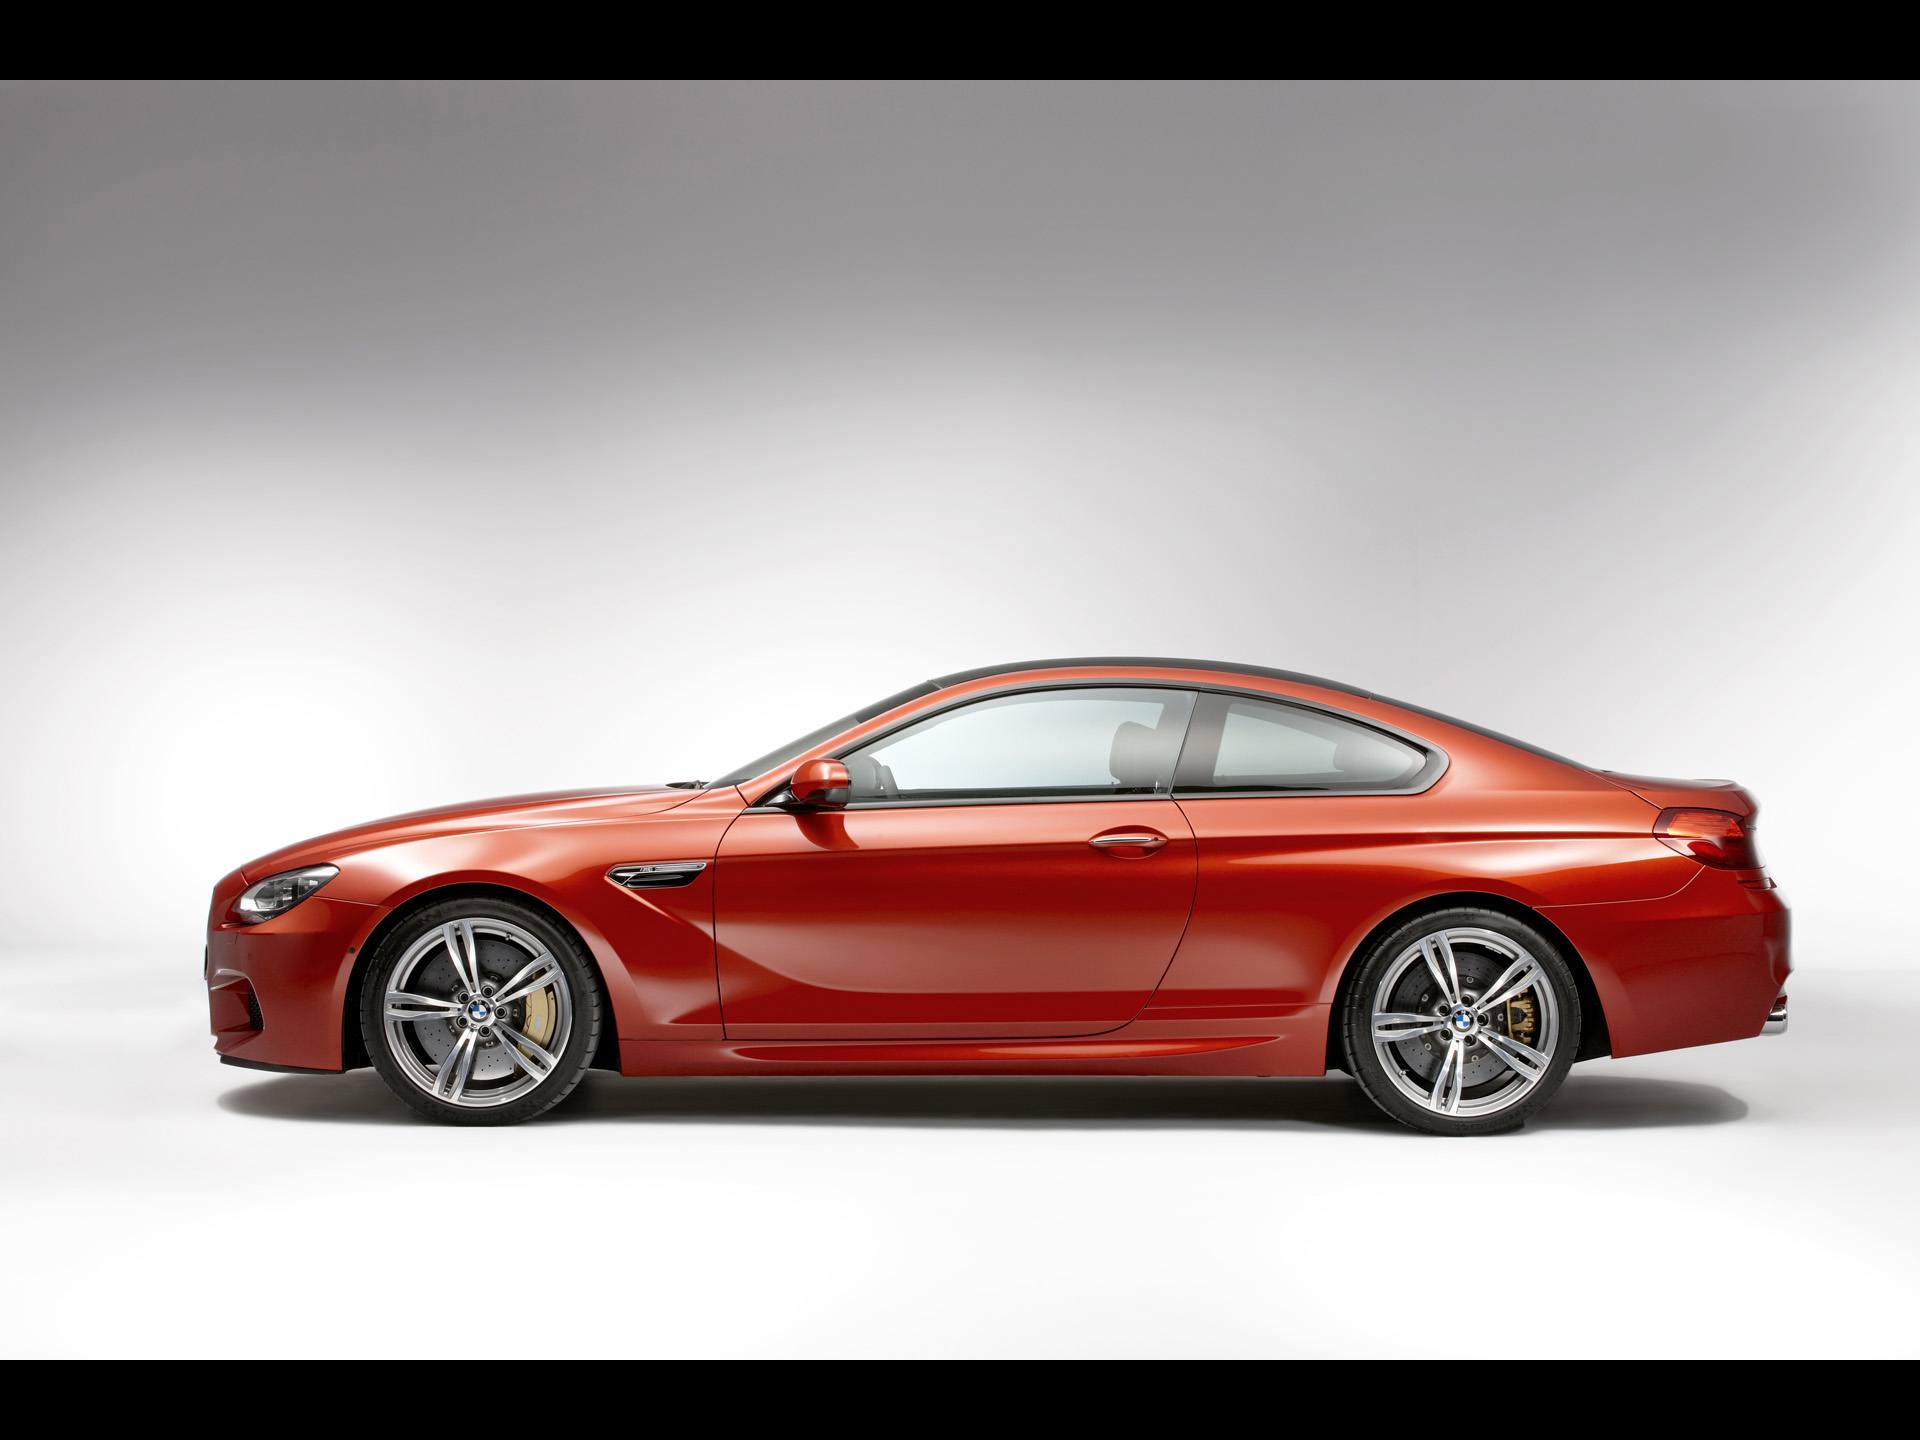 Bmw M6 Coupe Bmw Wallpaper 29312123 Fanpop